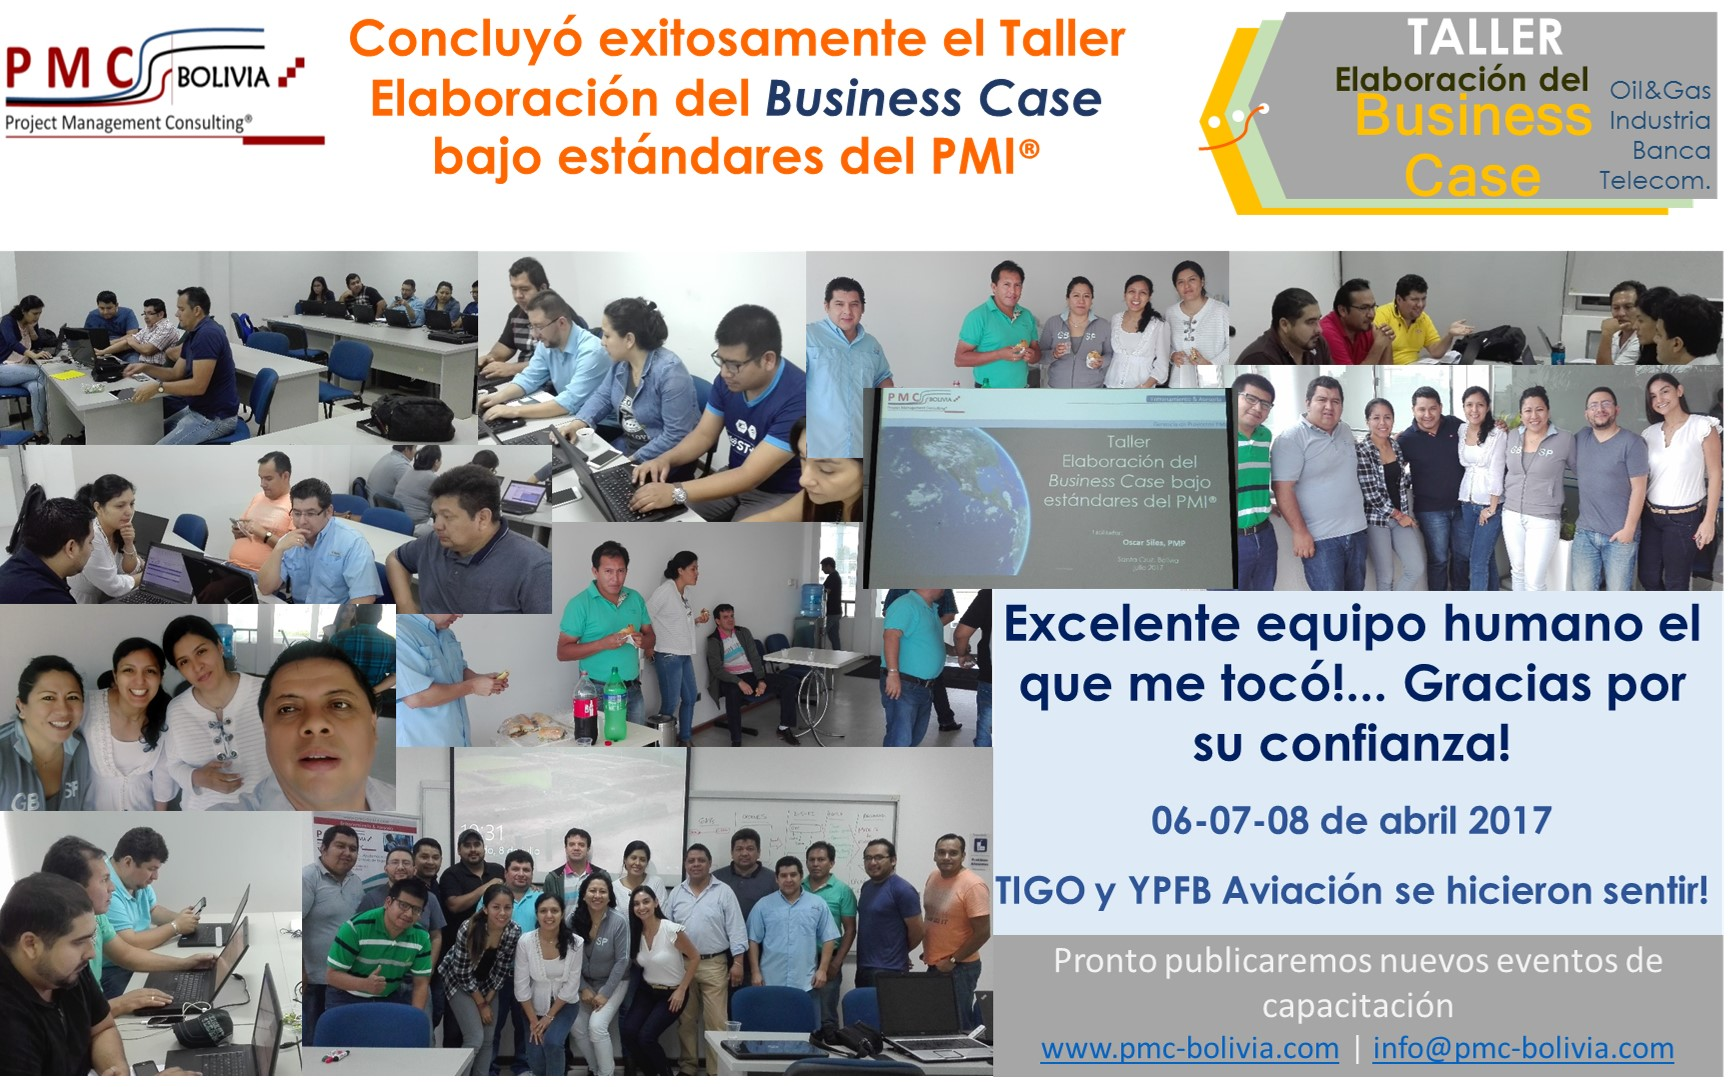 arte conclusion Taller Business Case - julio 2017 scz